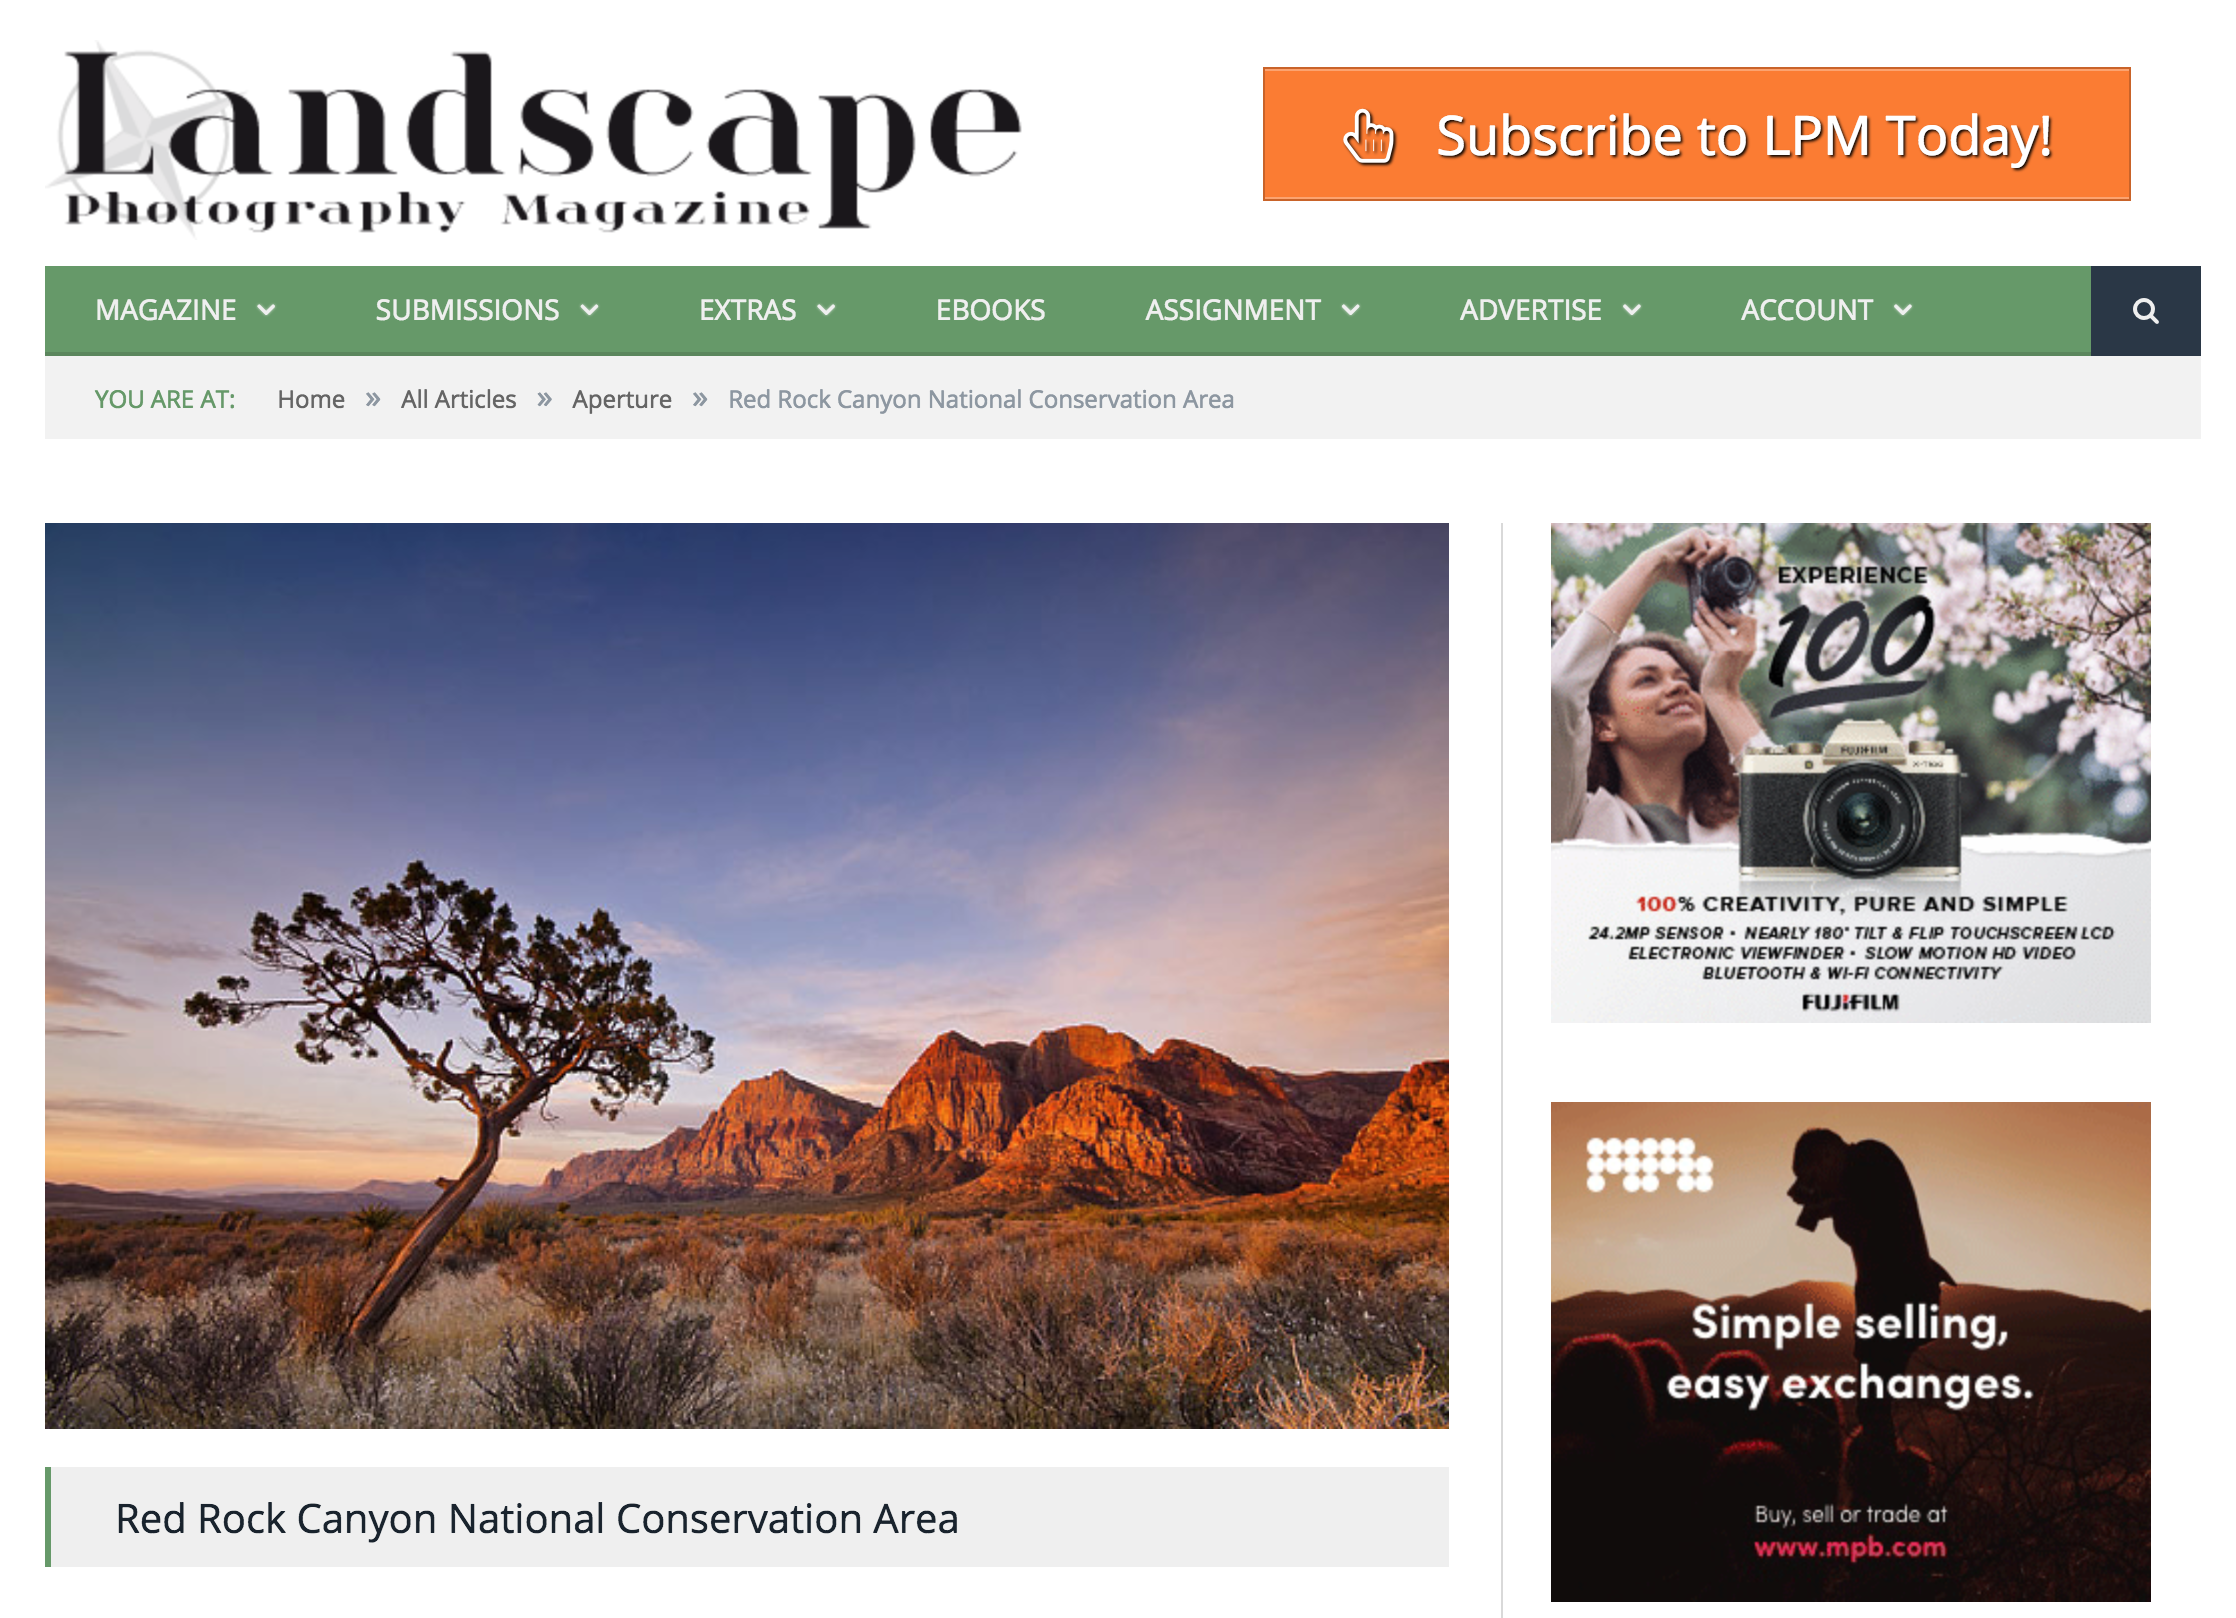 Featured article and photography in Landscape Photography Magazine - December 2012